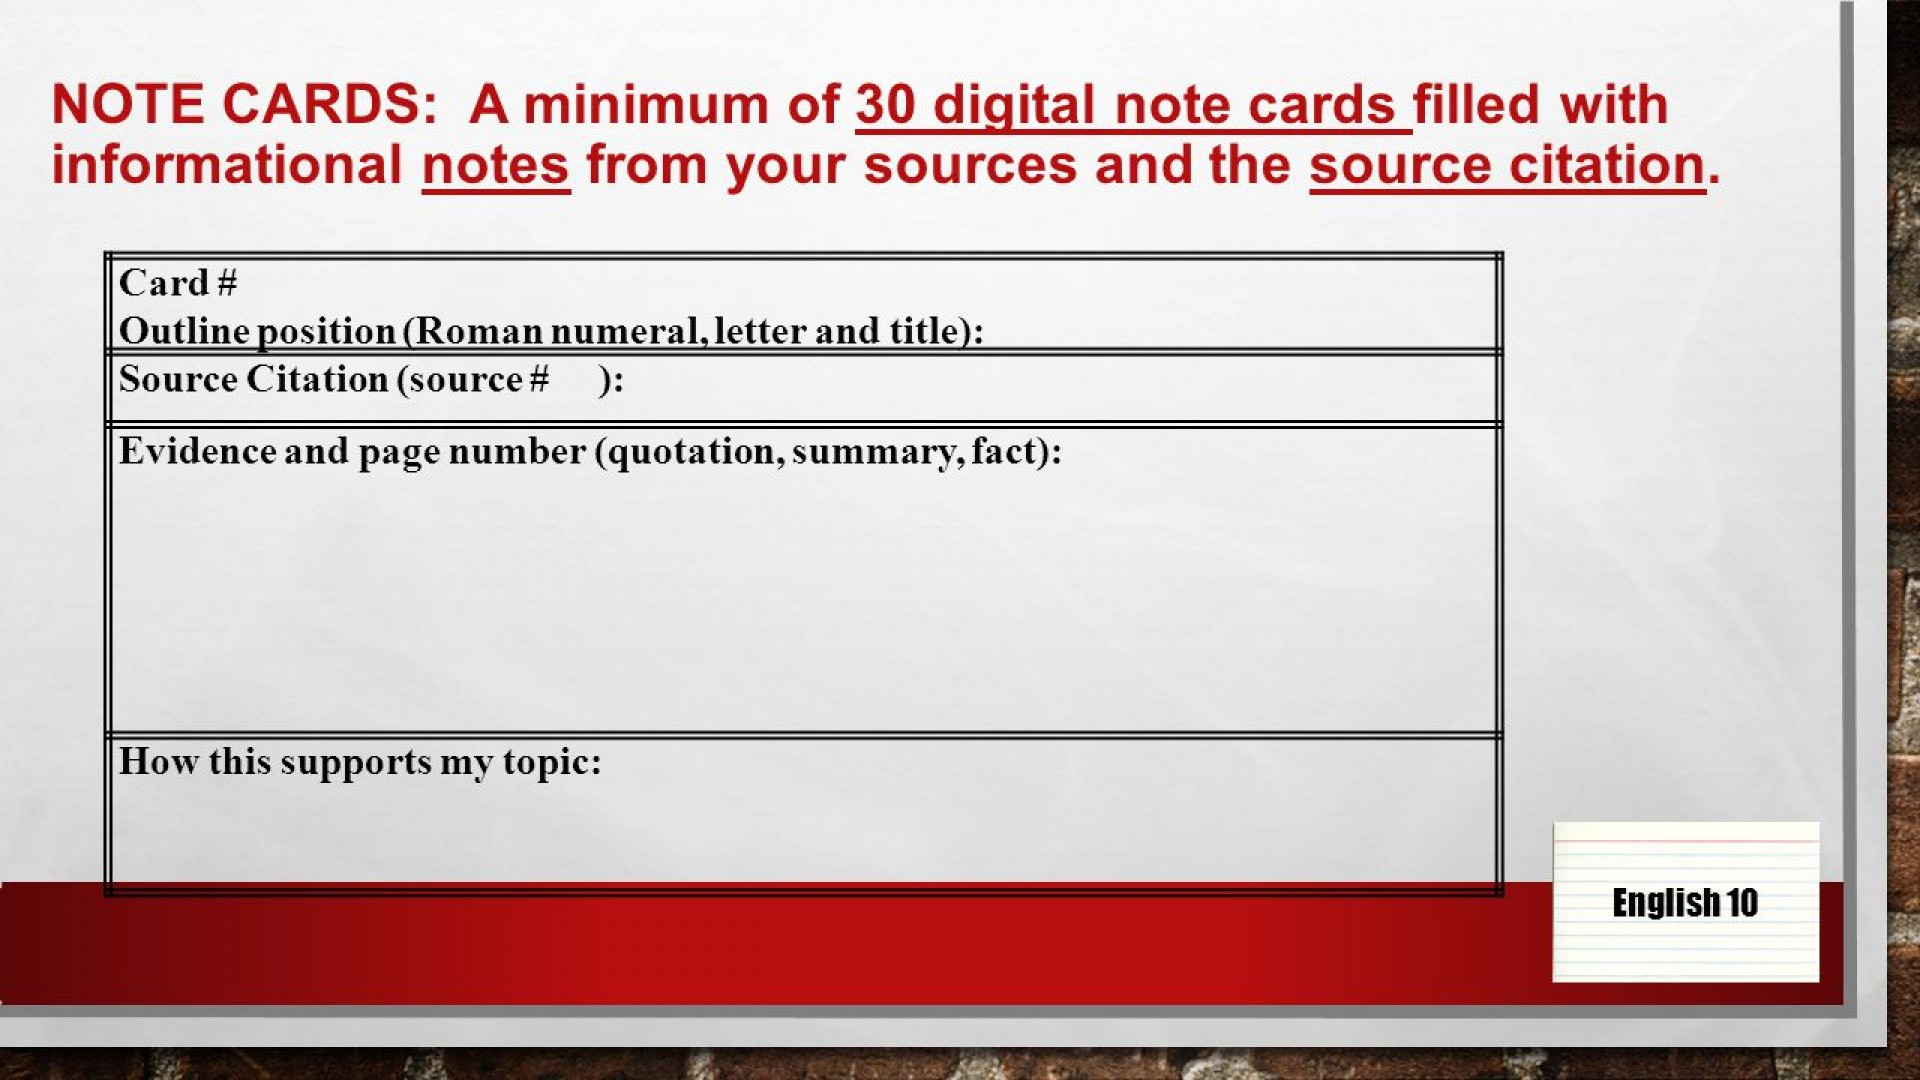 001 Research Paper Slide 4 Note Cards Rare For Formatting Notecards Papers Mla Digital 1920